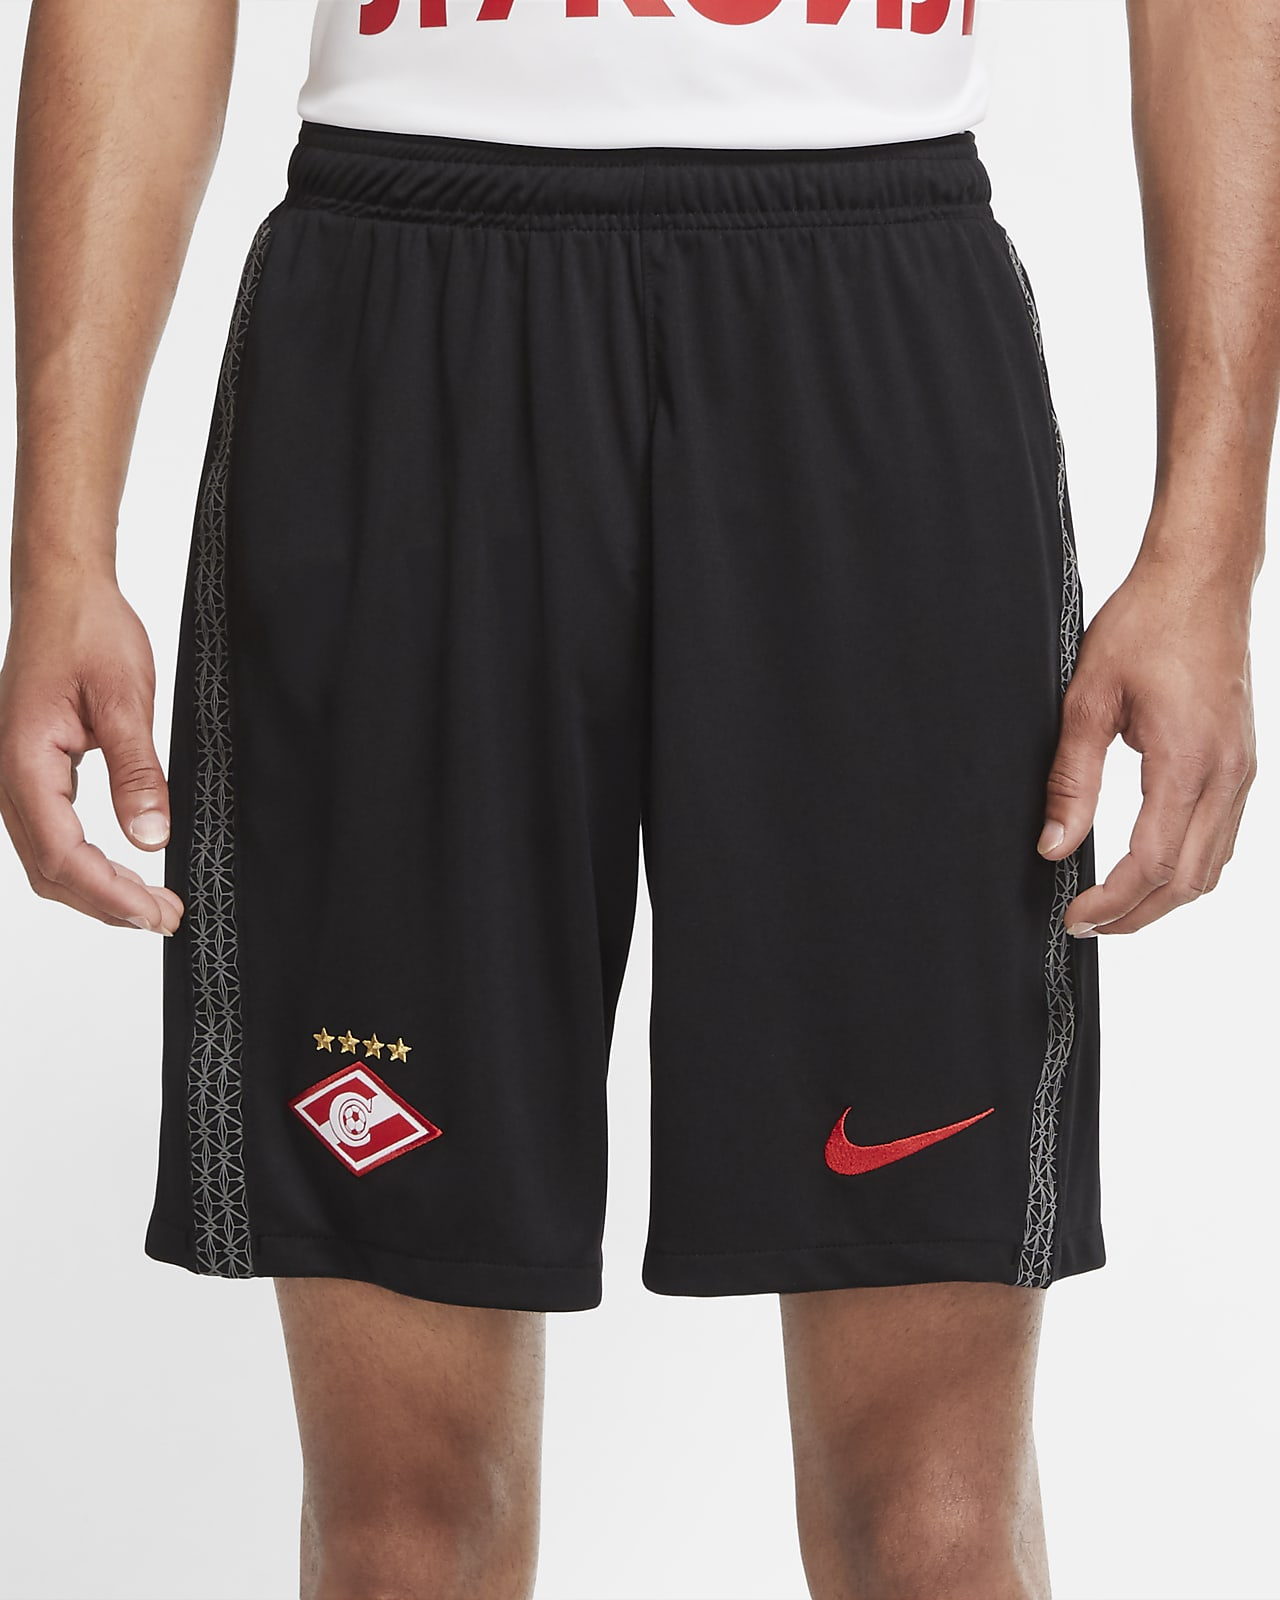 Spartak Moscow 2020/21 Stadium Home/Away Men's Football Shorts